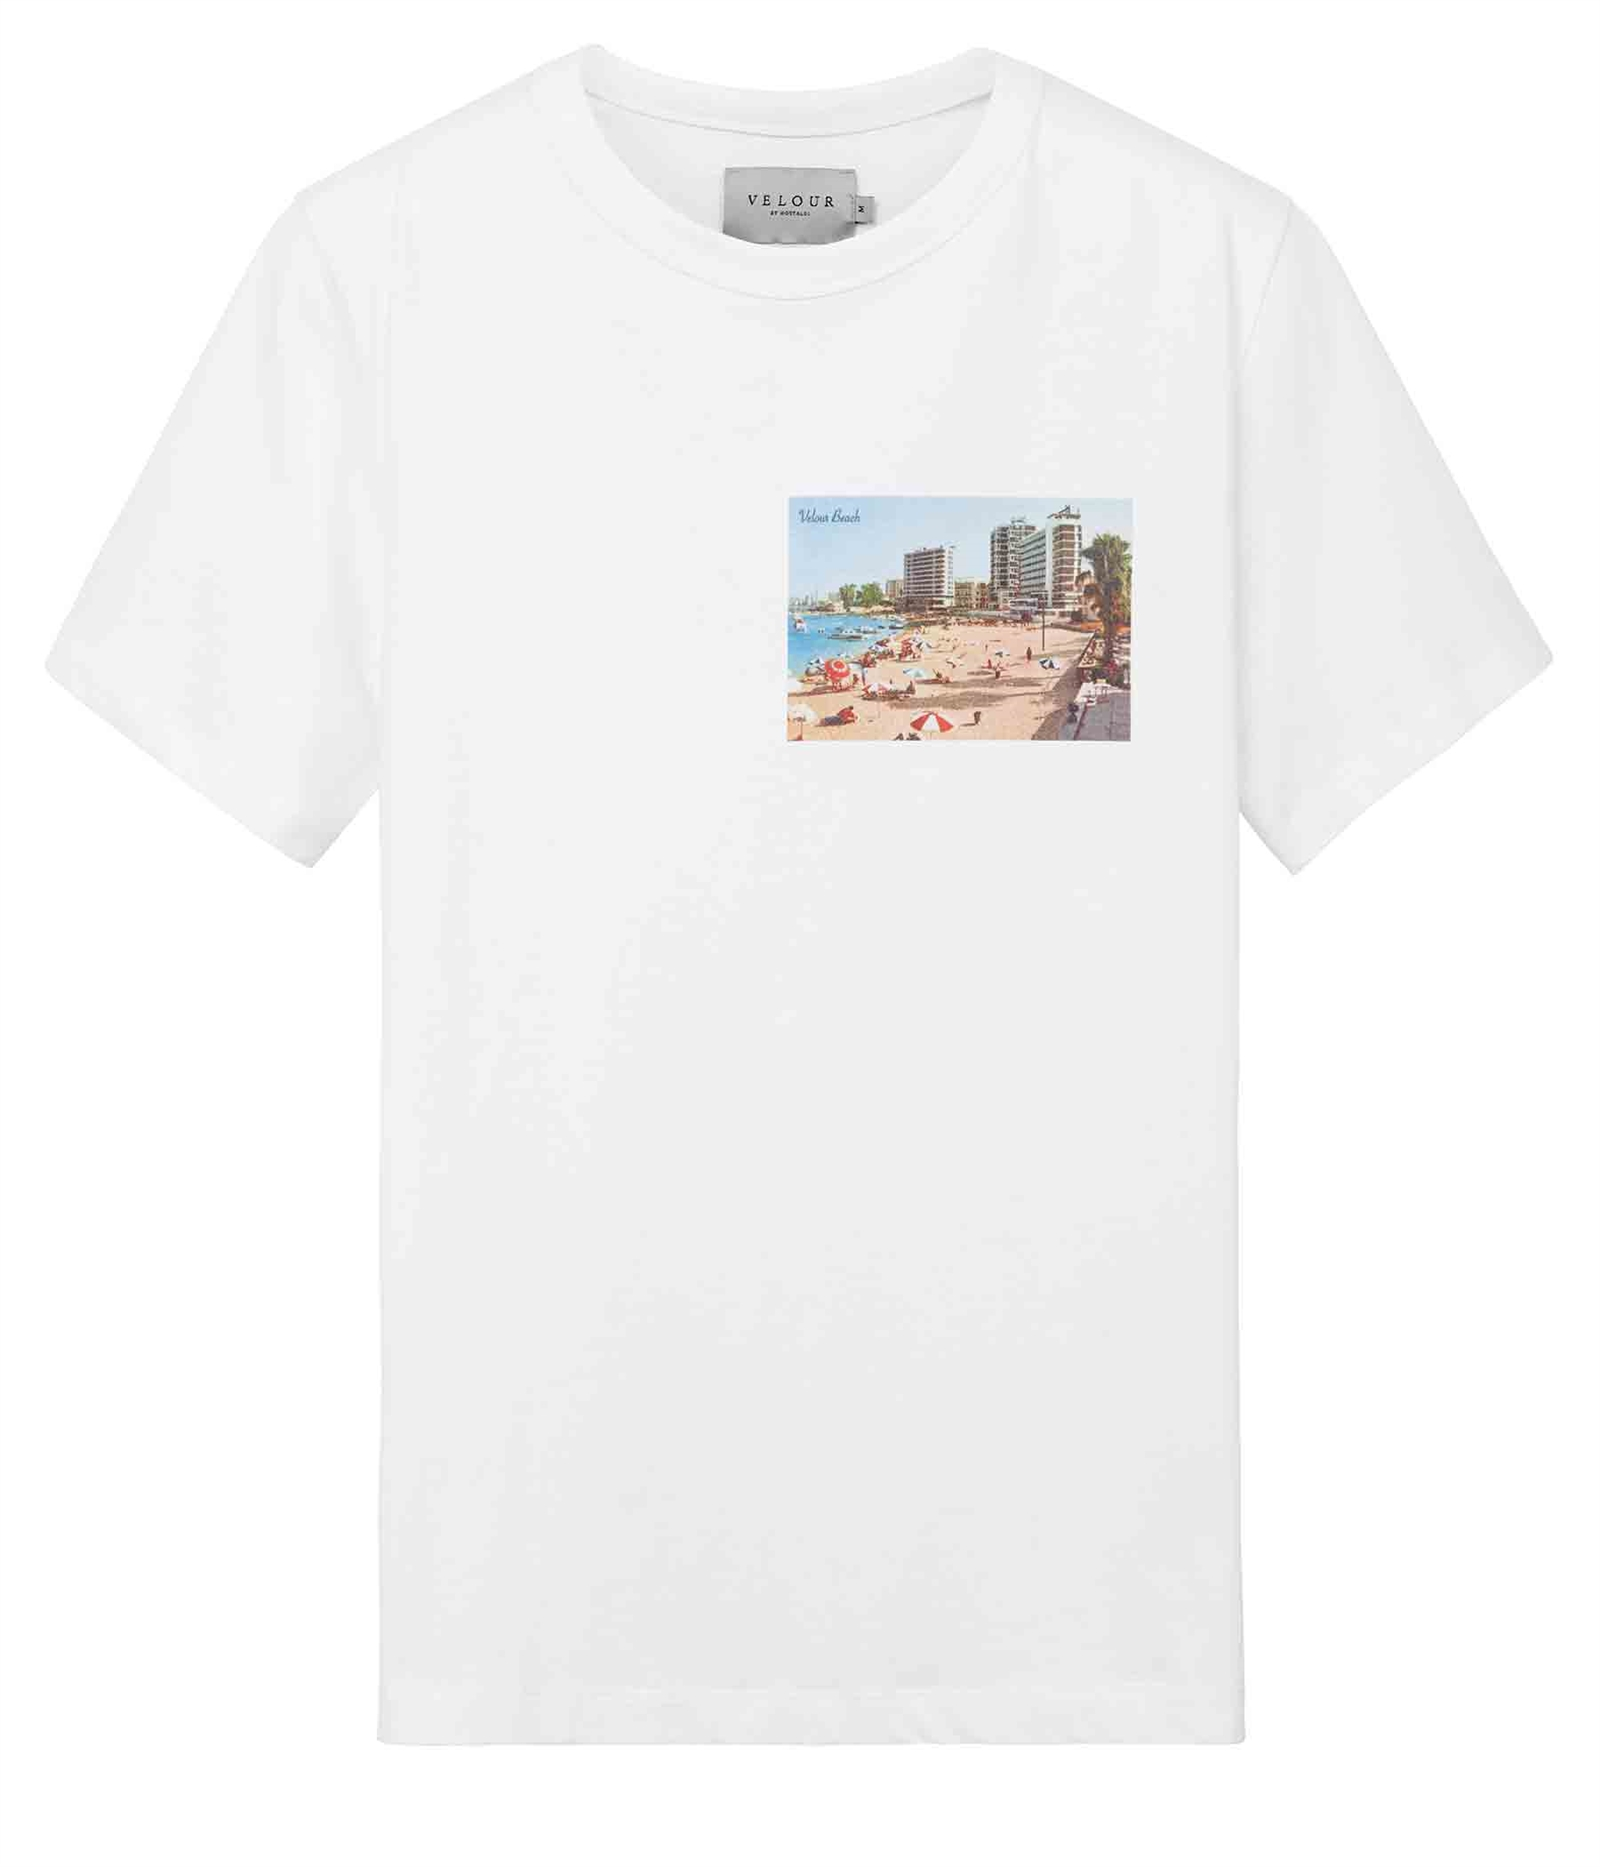 VBN_Velour_Beach_Tee_Jersey_White_3804100284_1800x2100